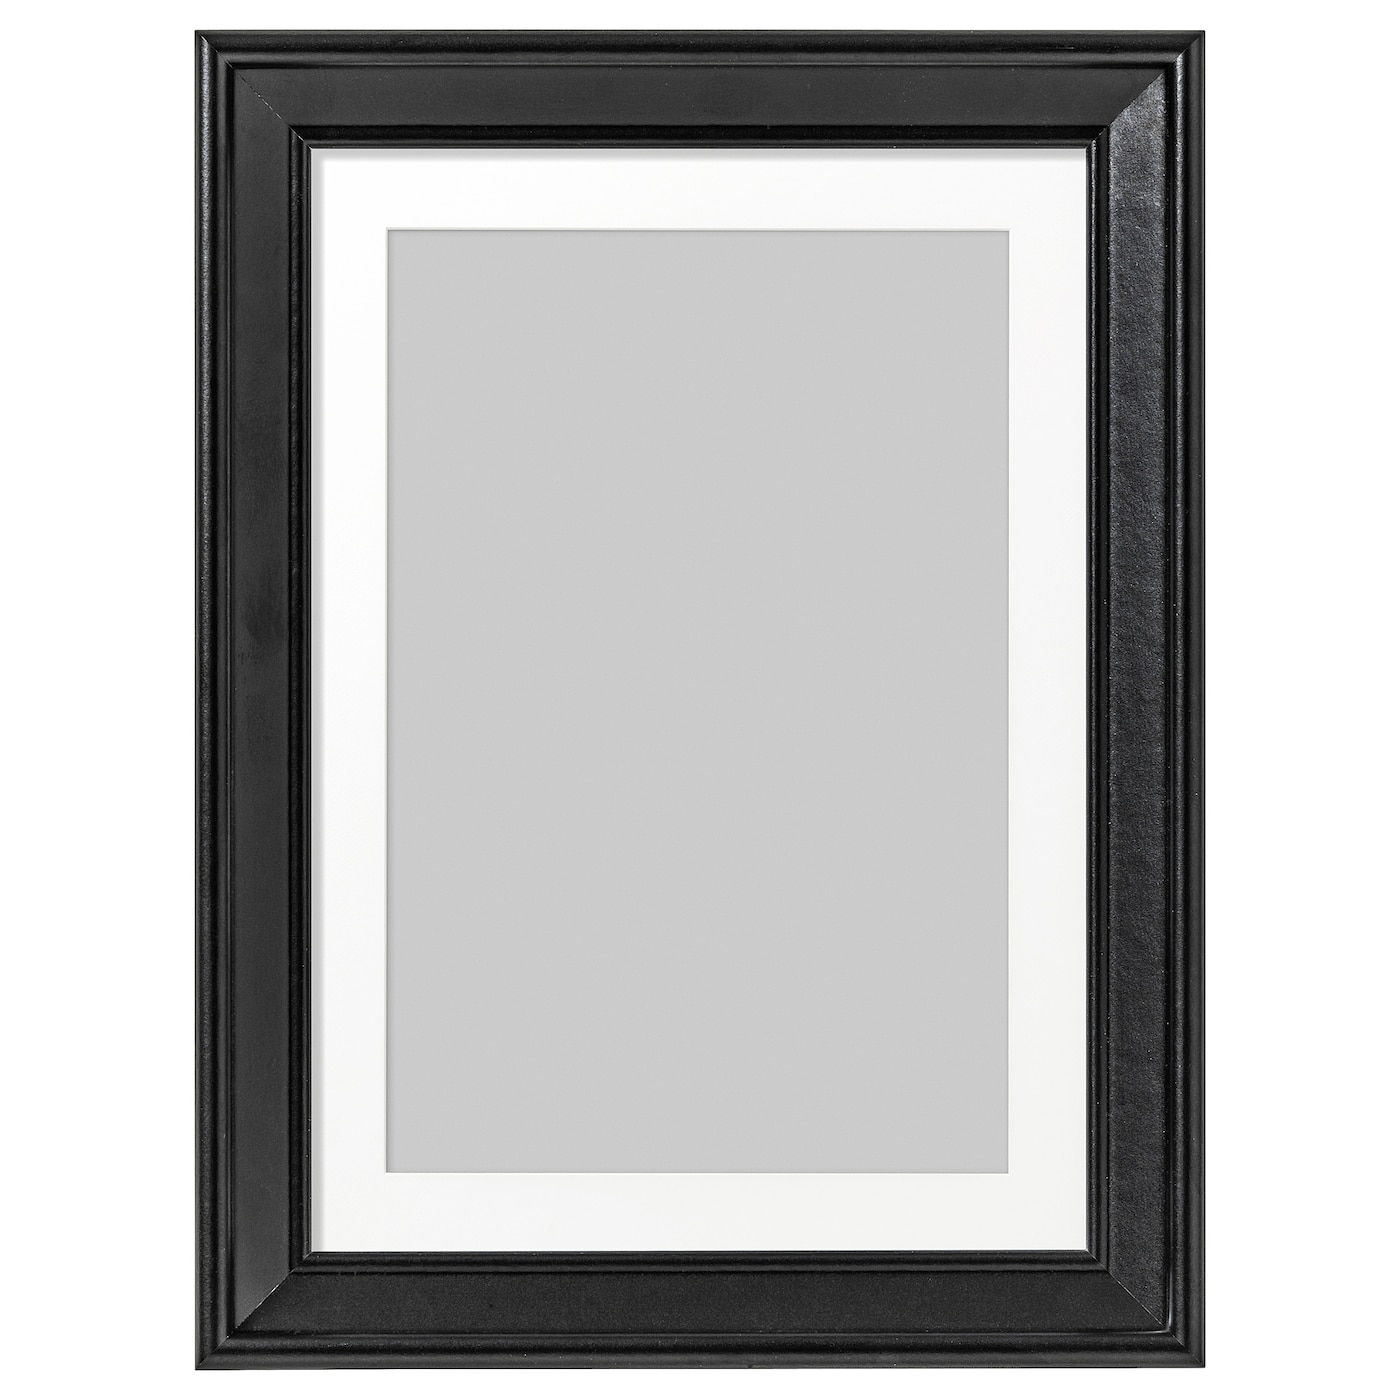 IKEA KNOPPÄNG frame Can also be used without mount, to take a larger picture.